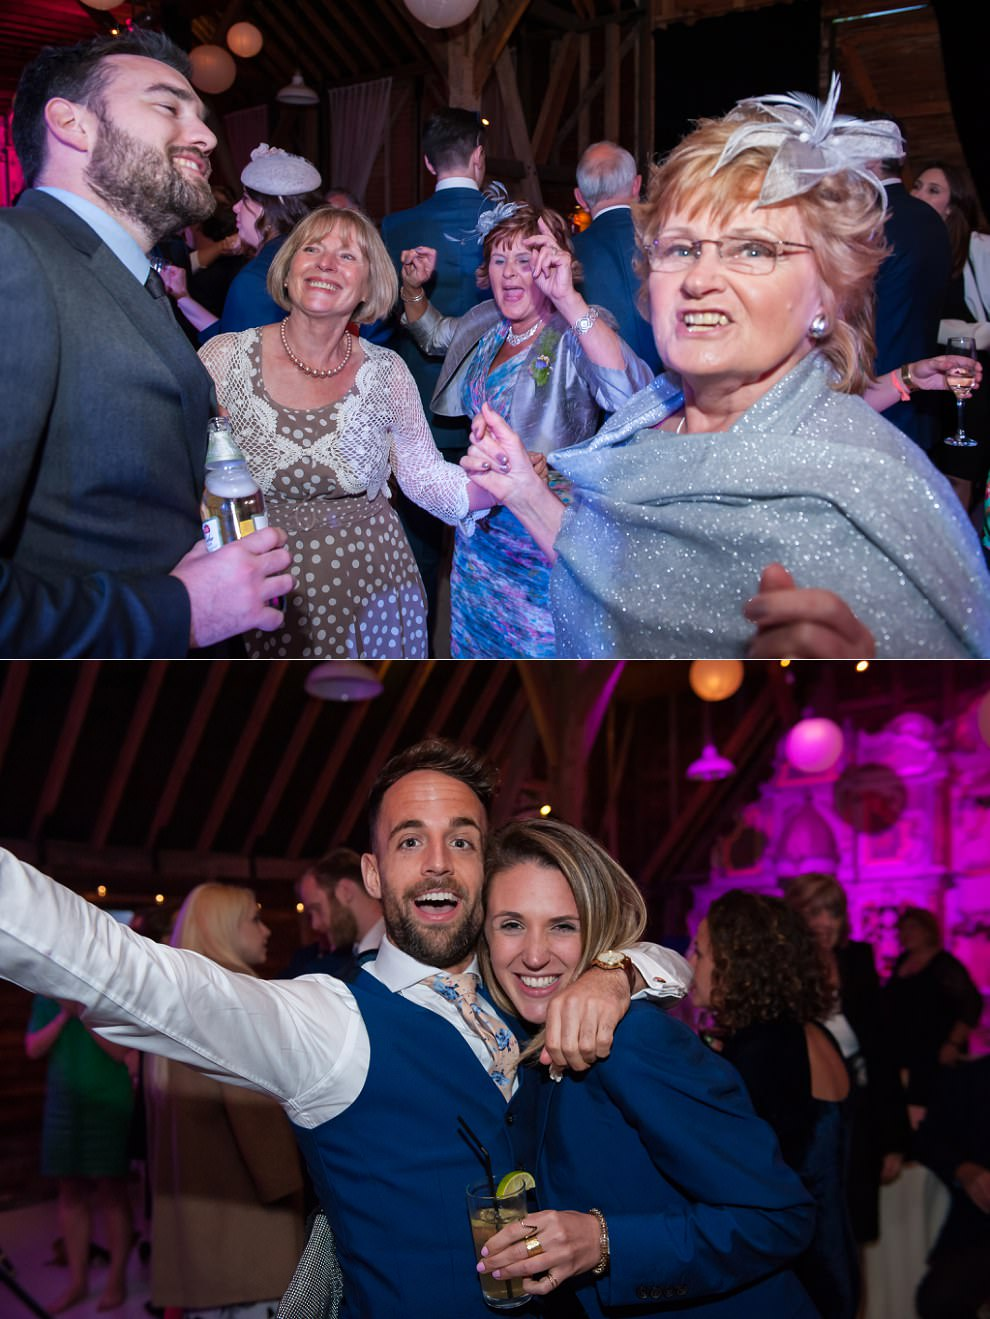 London wedding photographer | Fun dancing at Preston Court